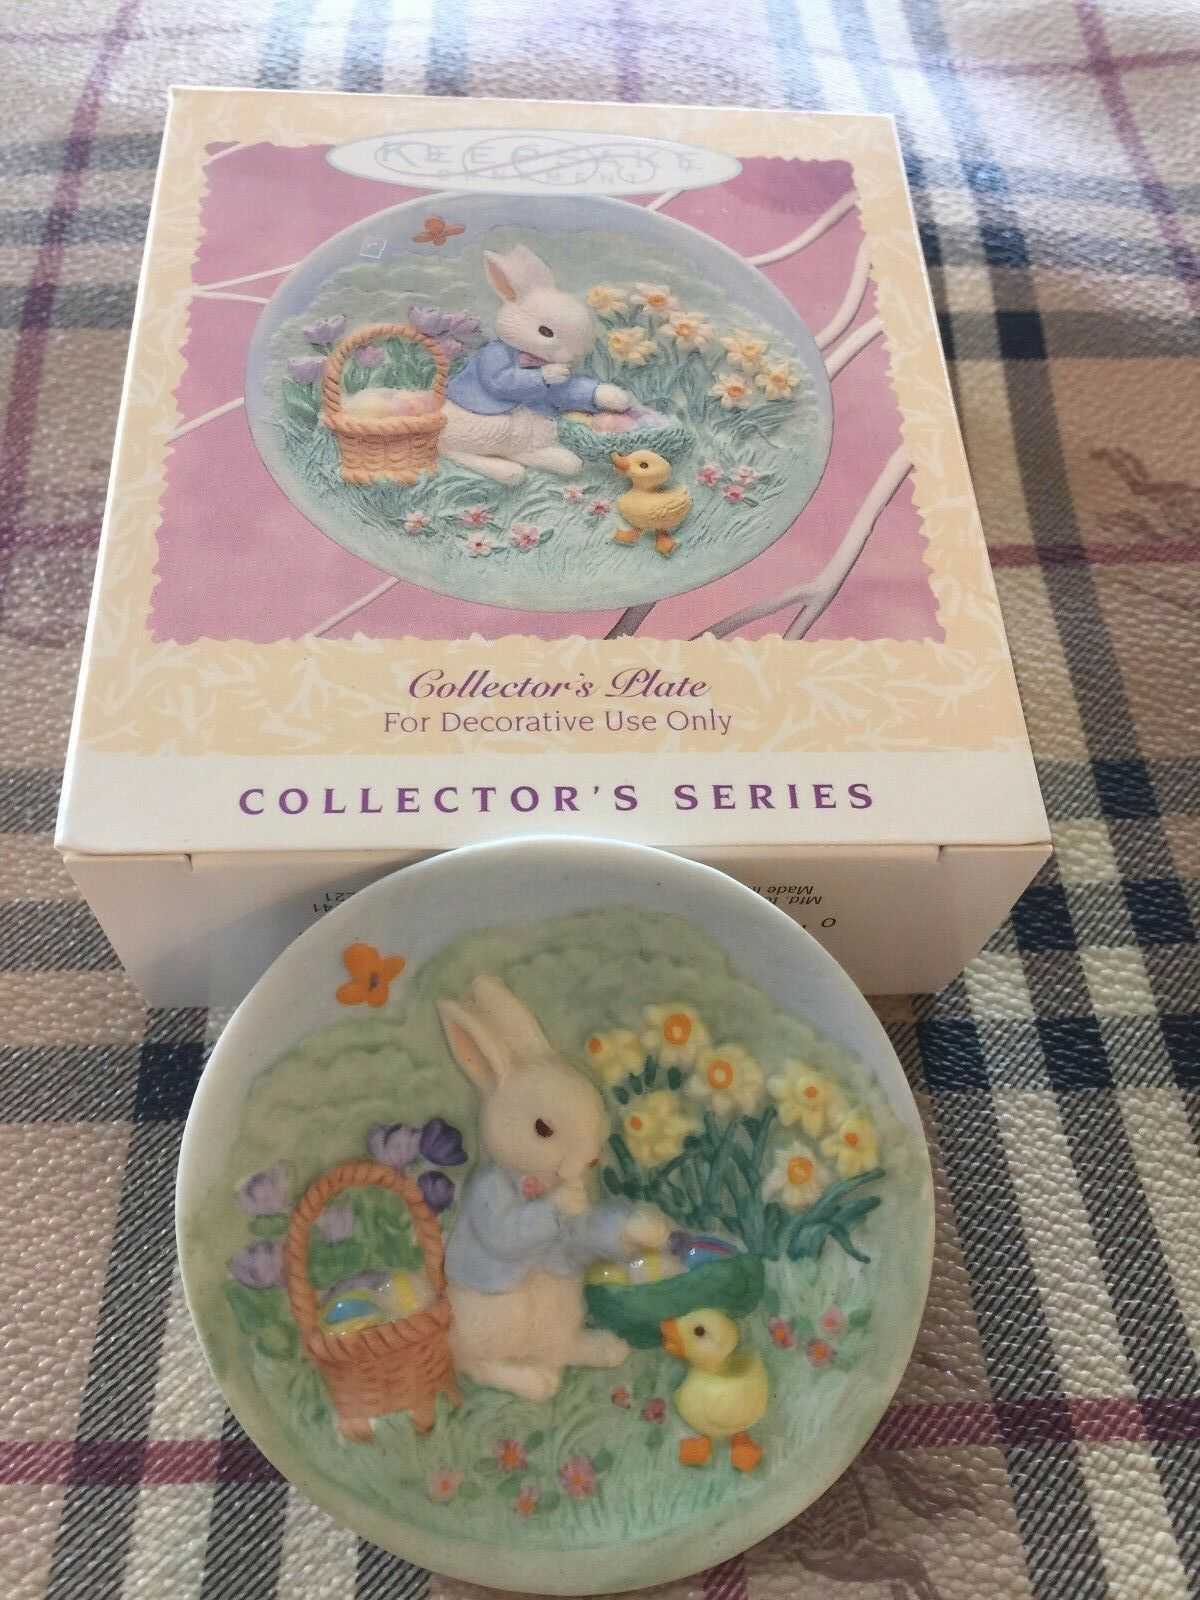 Hallmark 1996 Collector's Plate - Easter Collection Ornament - New In Box!